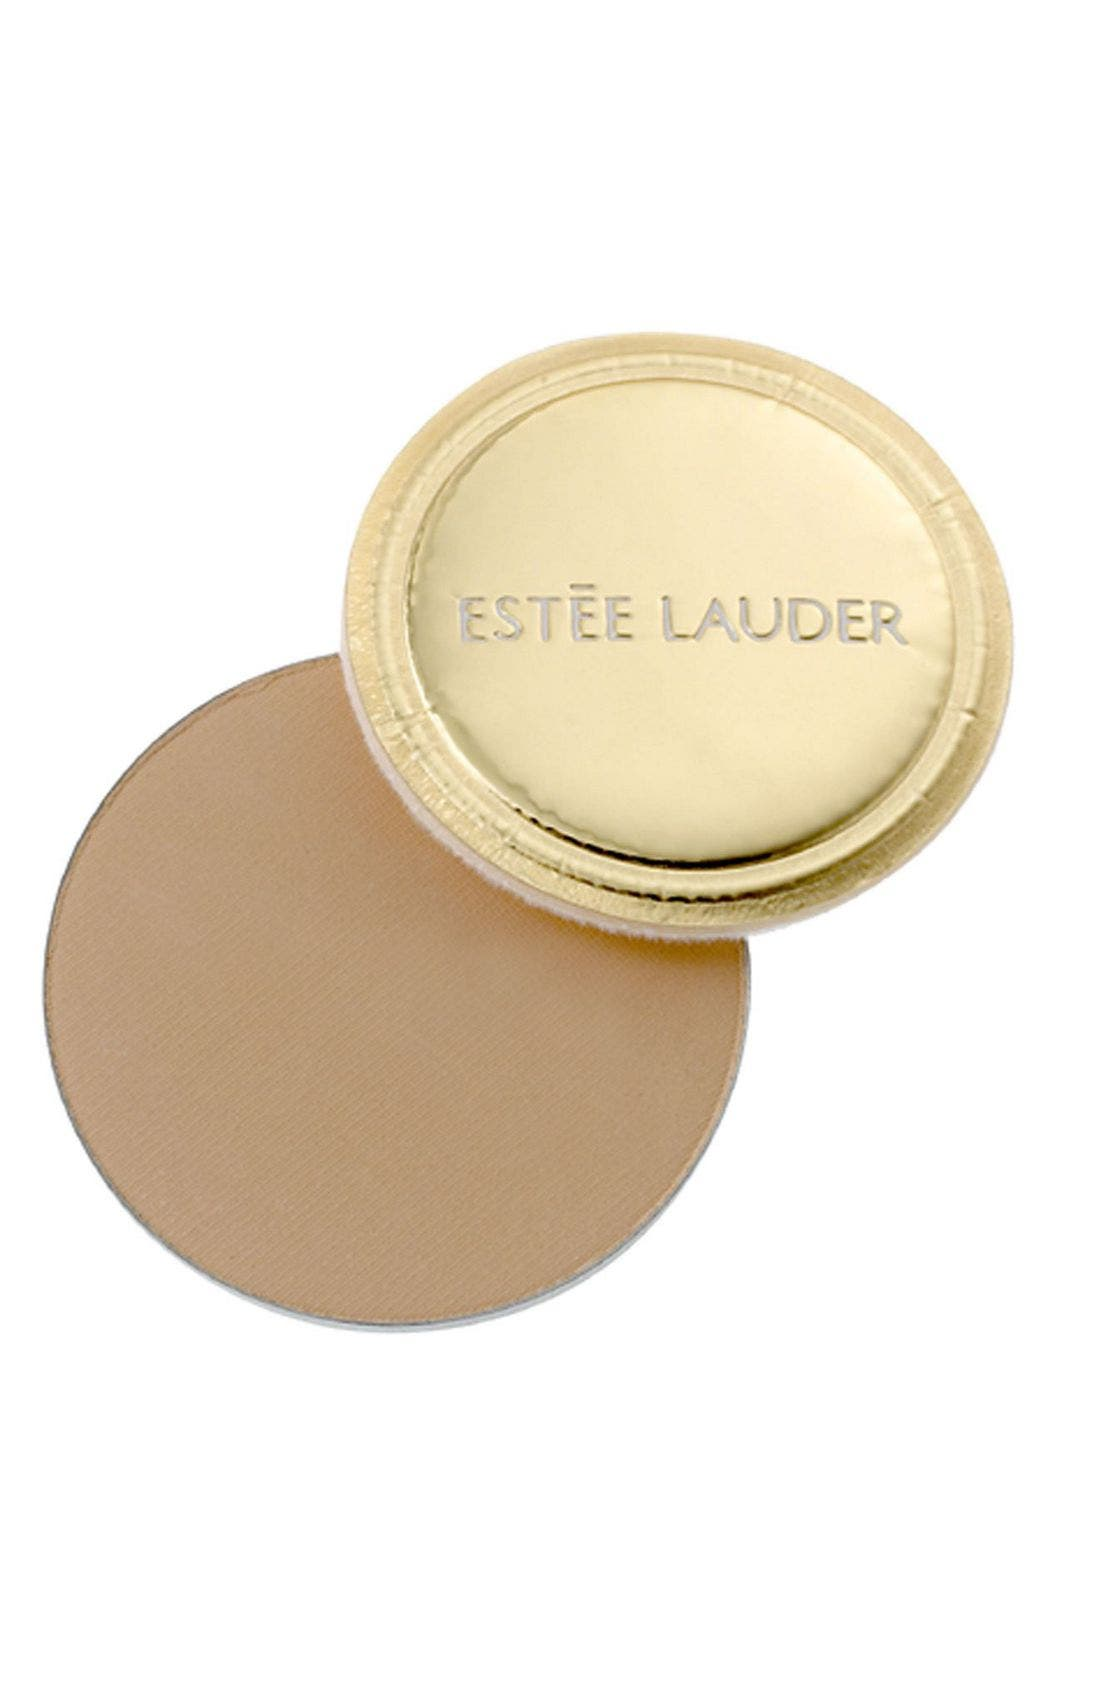 Alternate Image 1 Selected - Estée Lauder 'After Hours' Lucidity Pressed Powder Refill